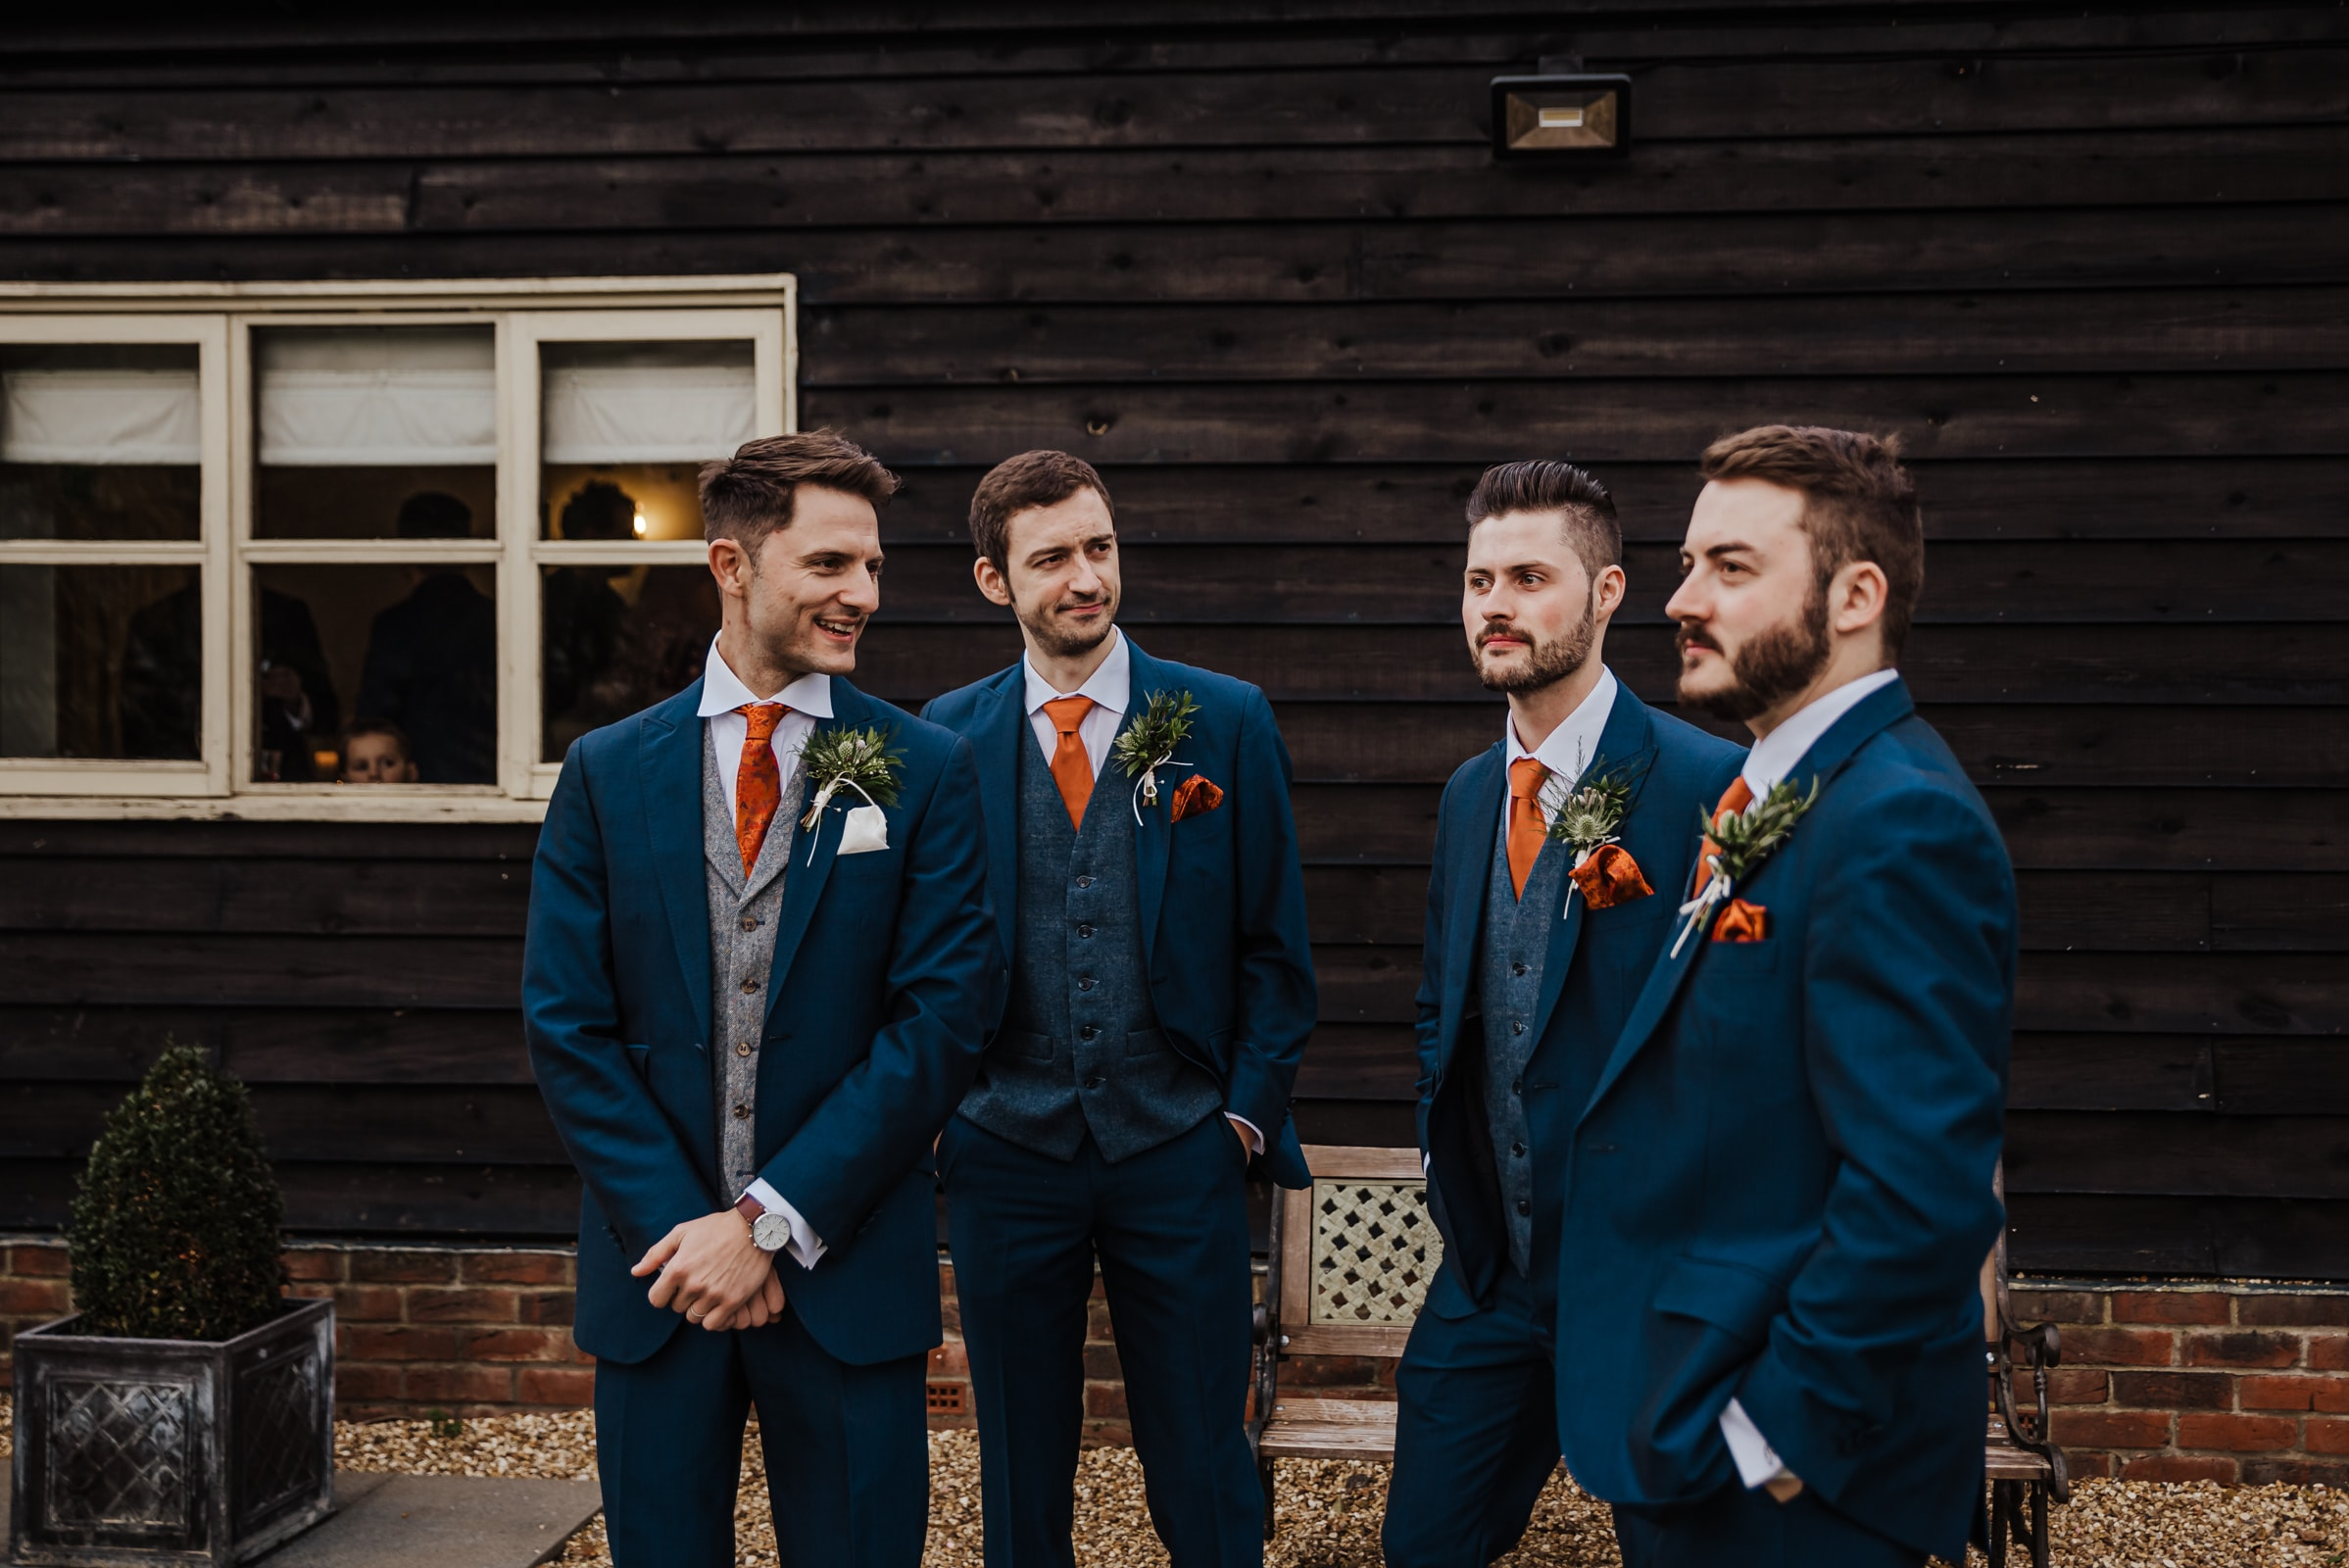 Groom getting ready with the groomsmen dinosaur a themed menus Roshni photography The Milling Barn, Bluntswood Hall, Throcking wedding photographer